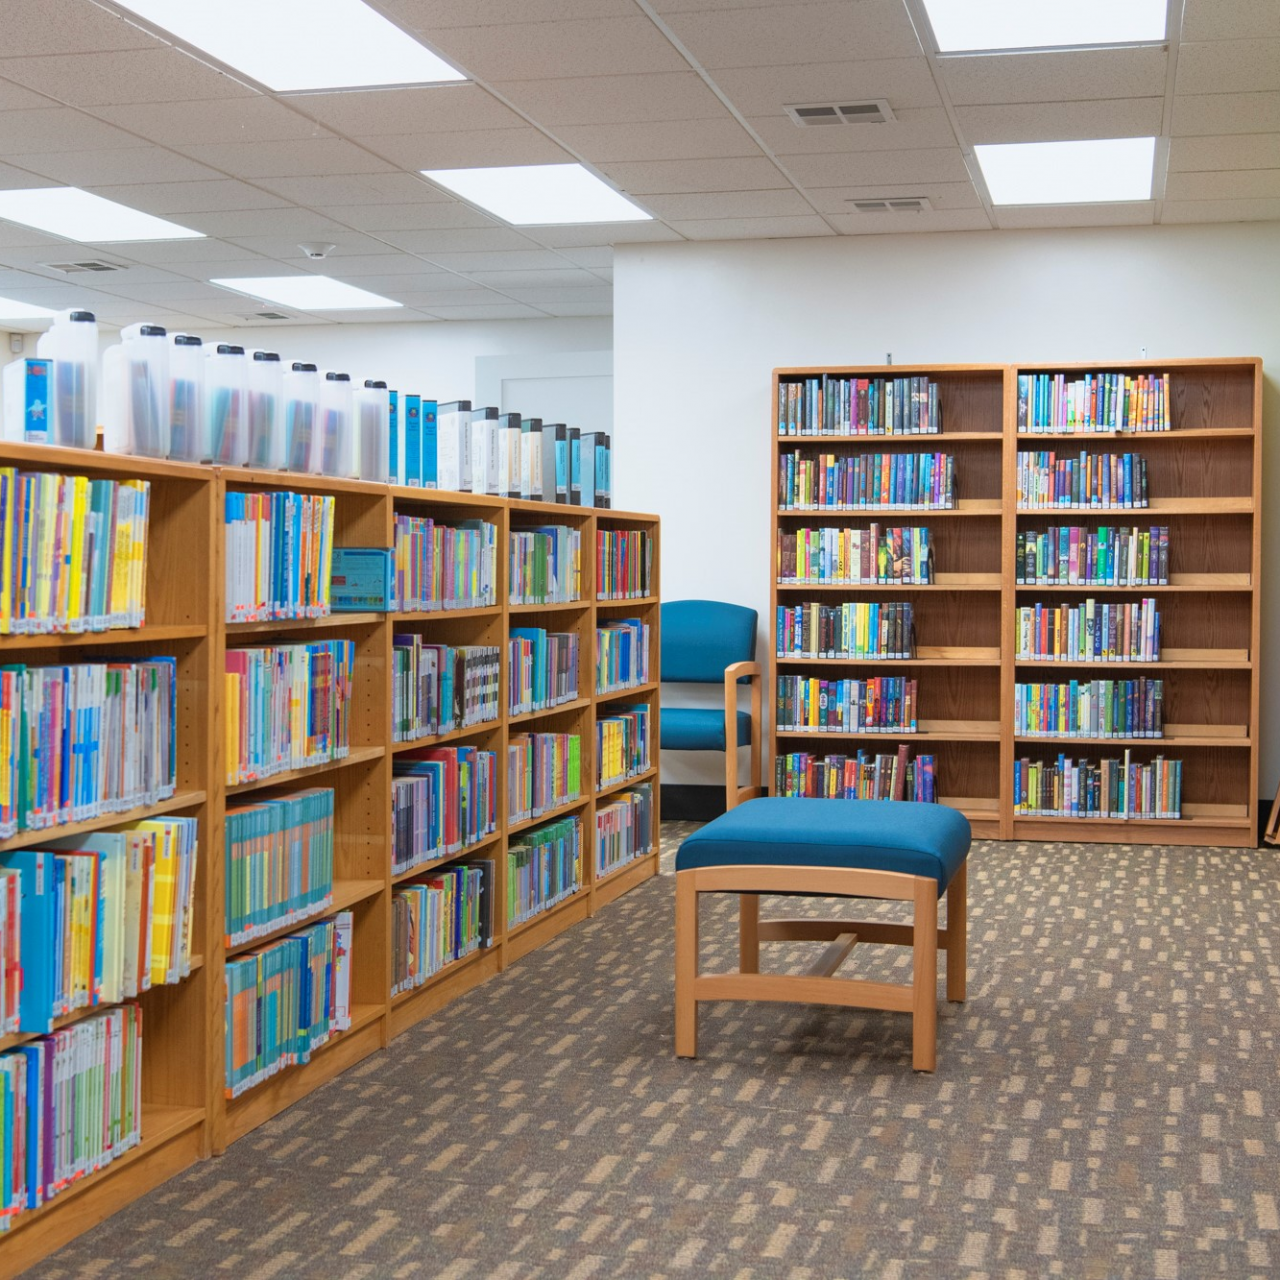 shelves of books and blue upholstered furniture